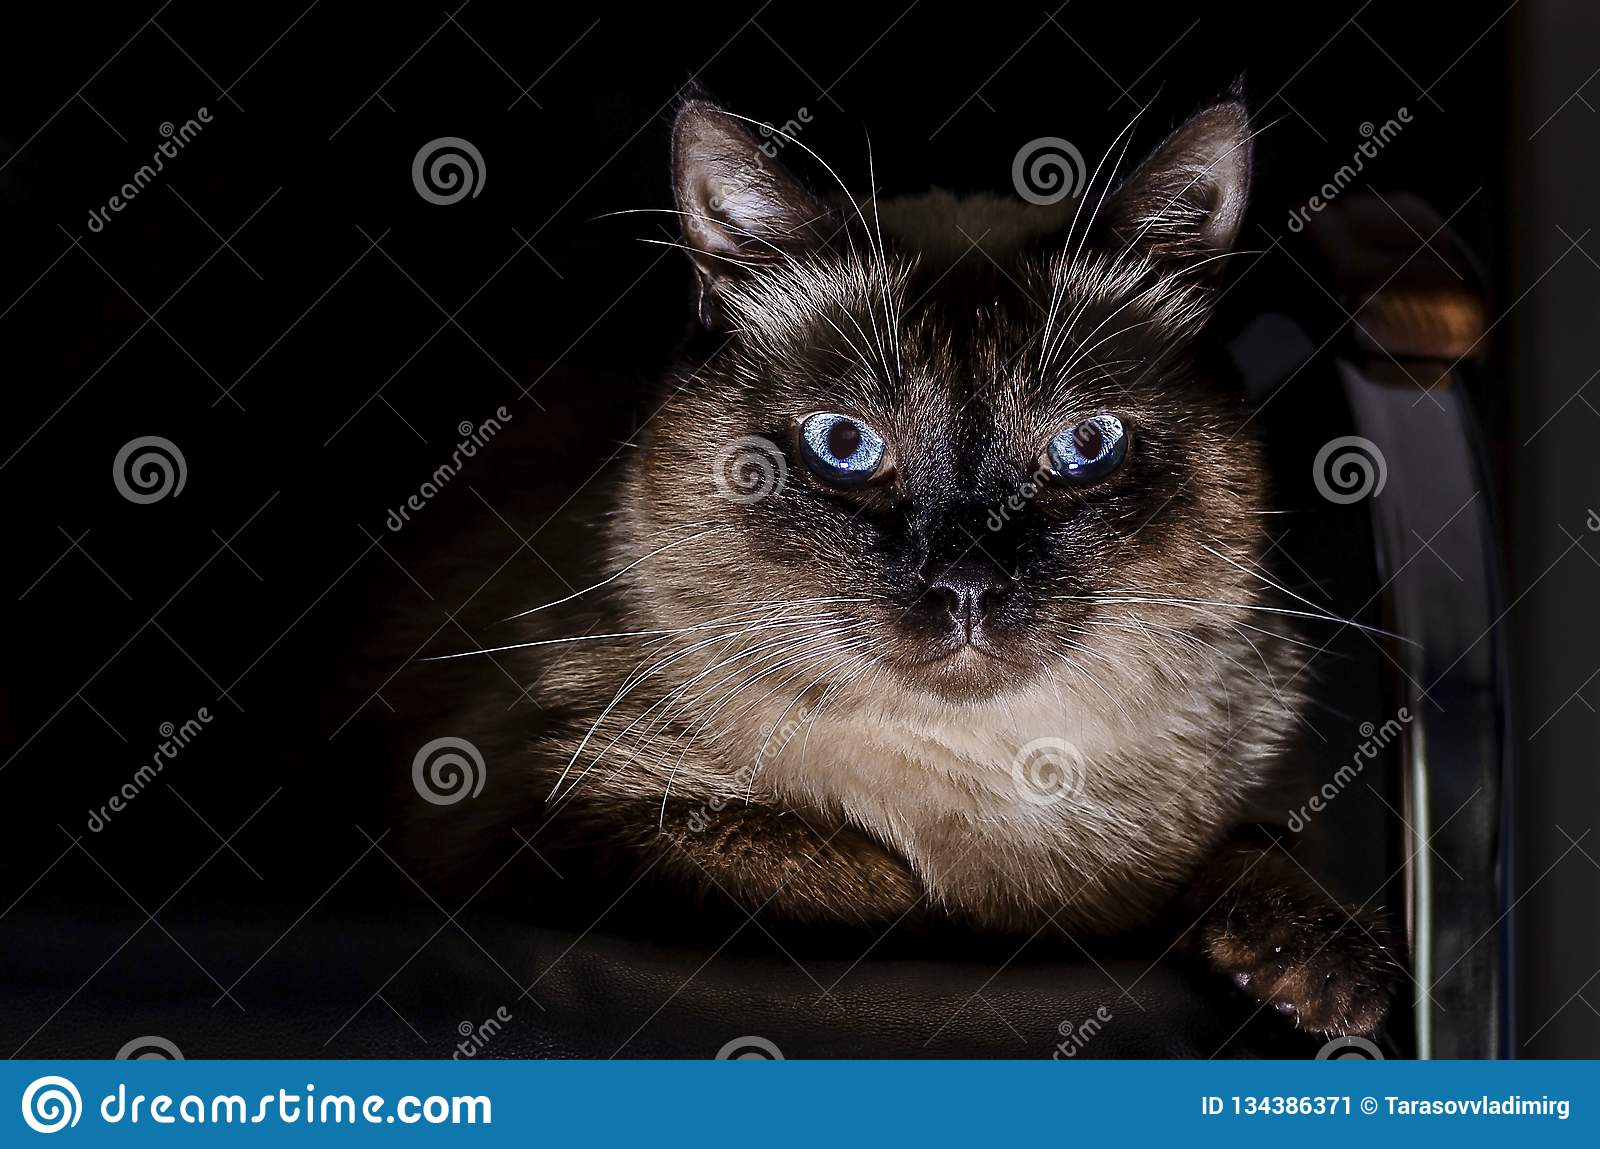 Purebred Thai cat with blue eyes, sitting on the couch in total darkness